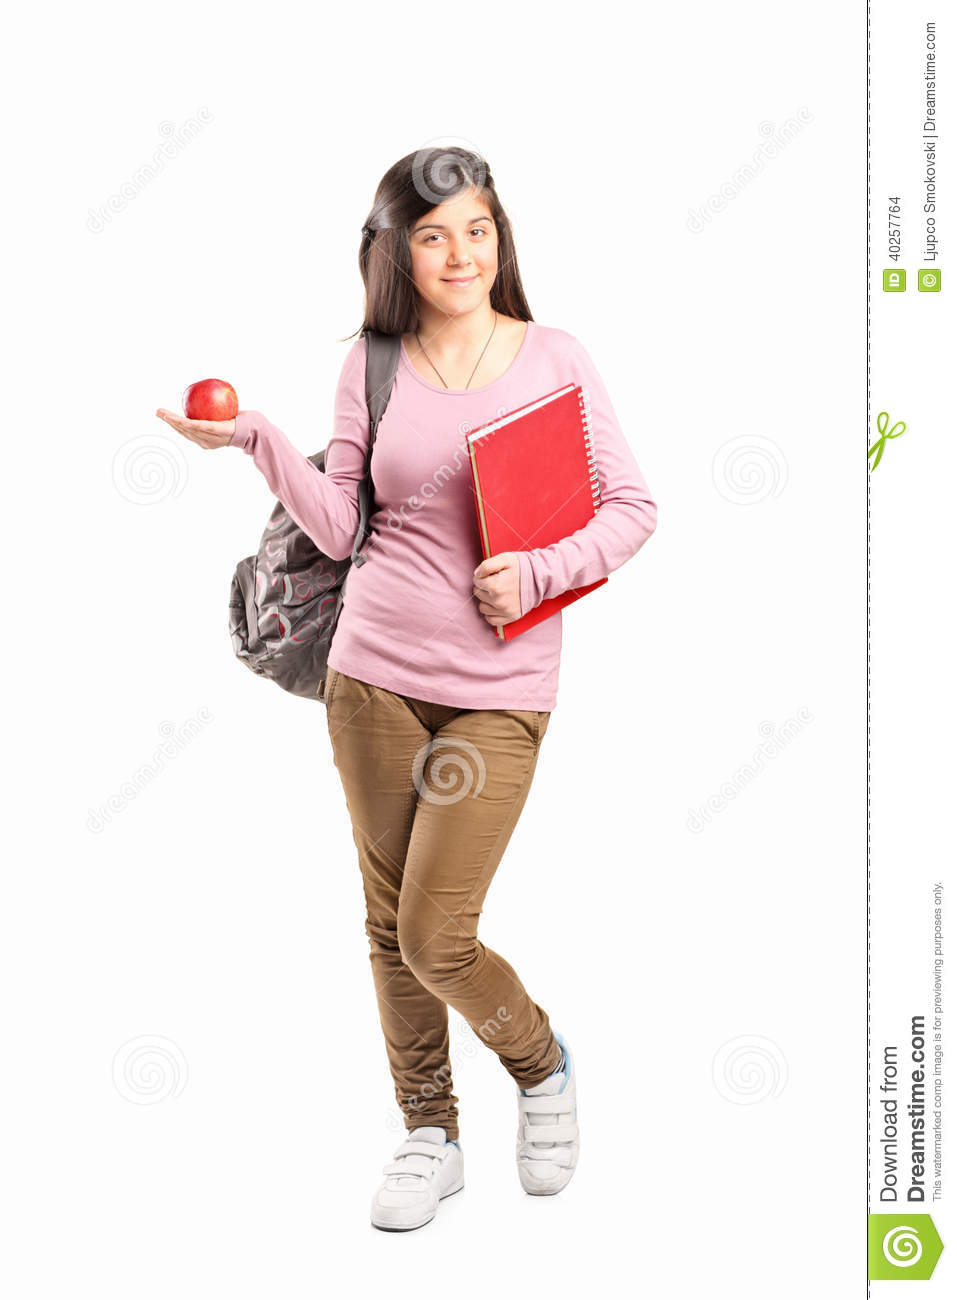 c4237098cc46 Schoolgirl Holding An Apple Stock Photo - Image of notebook ...